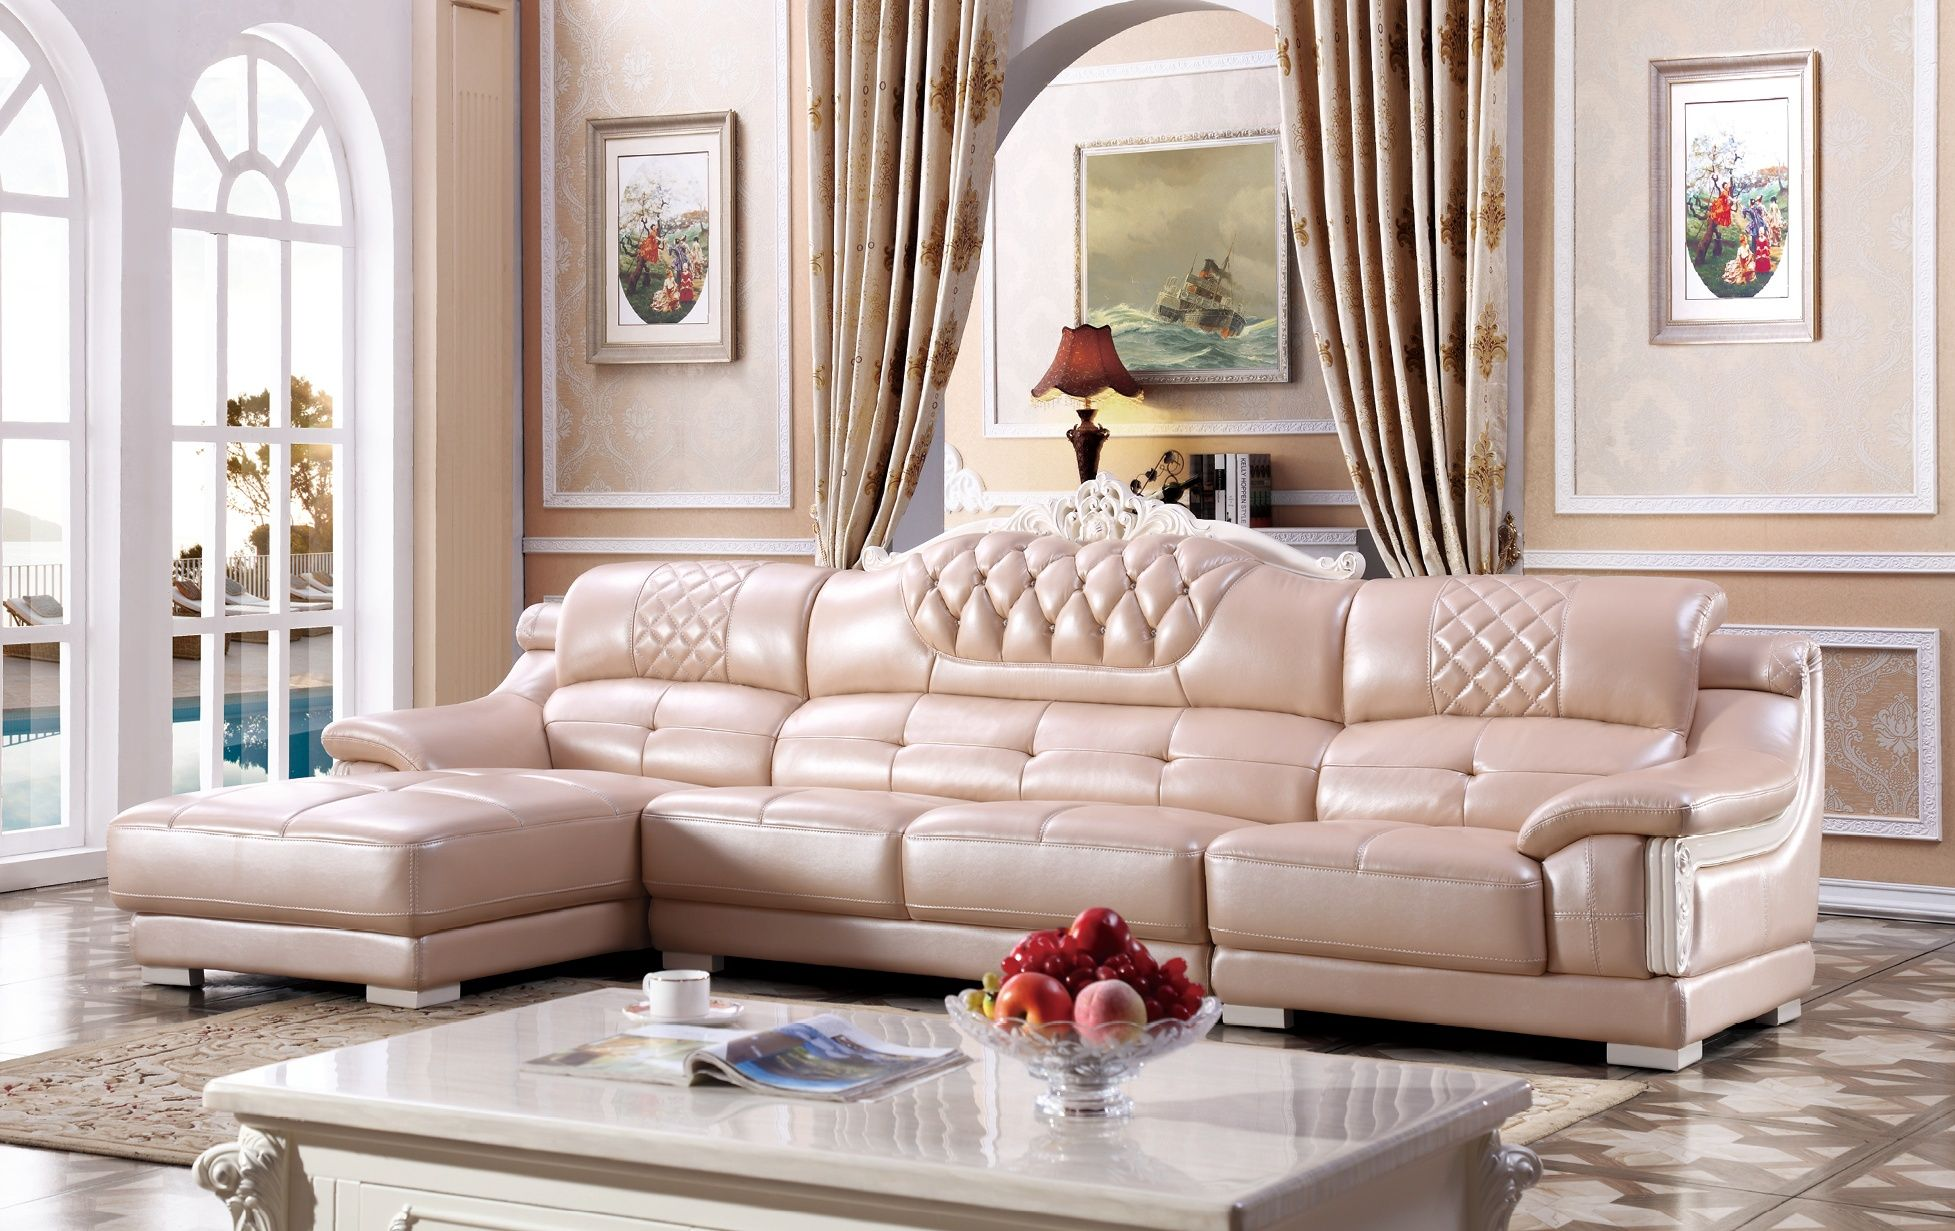 contemporary furniture pictures. Contemporary Furniture, Sofas Furniture Pictures R